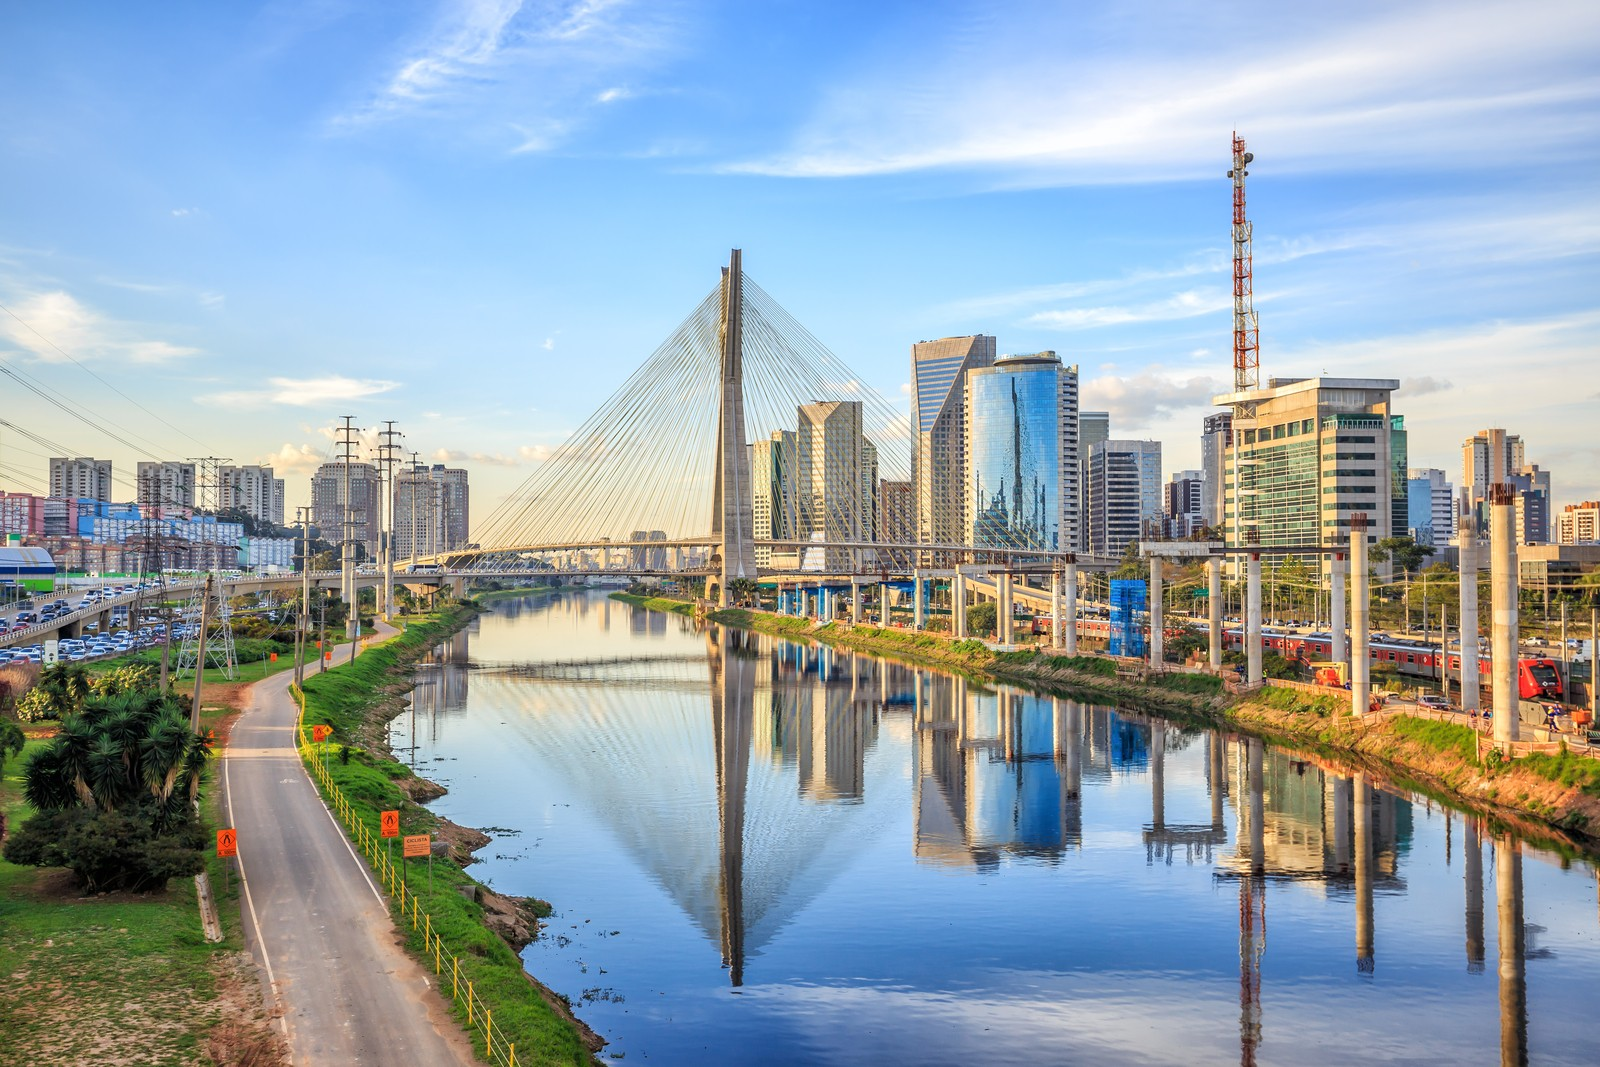 Sao Paulo Not Only Is It Brazils Largest Metropolis With A Population Of More Than 12 Million Rising To 20 Million If You Include The Suburban